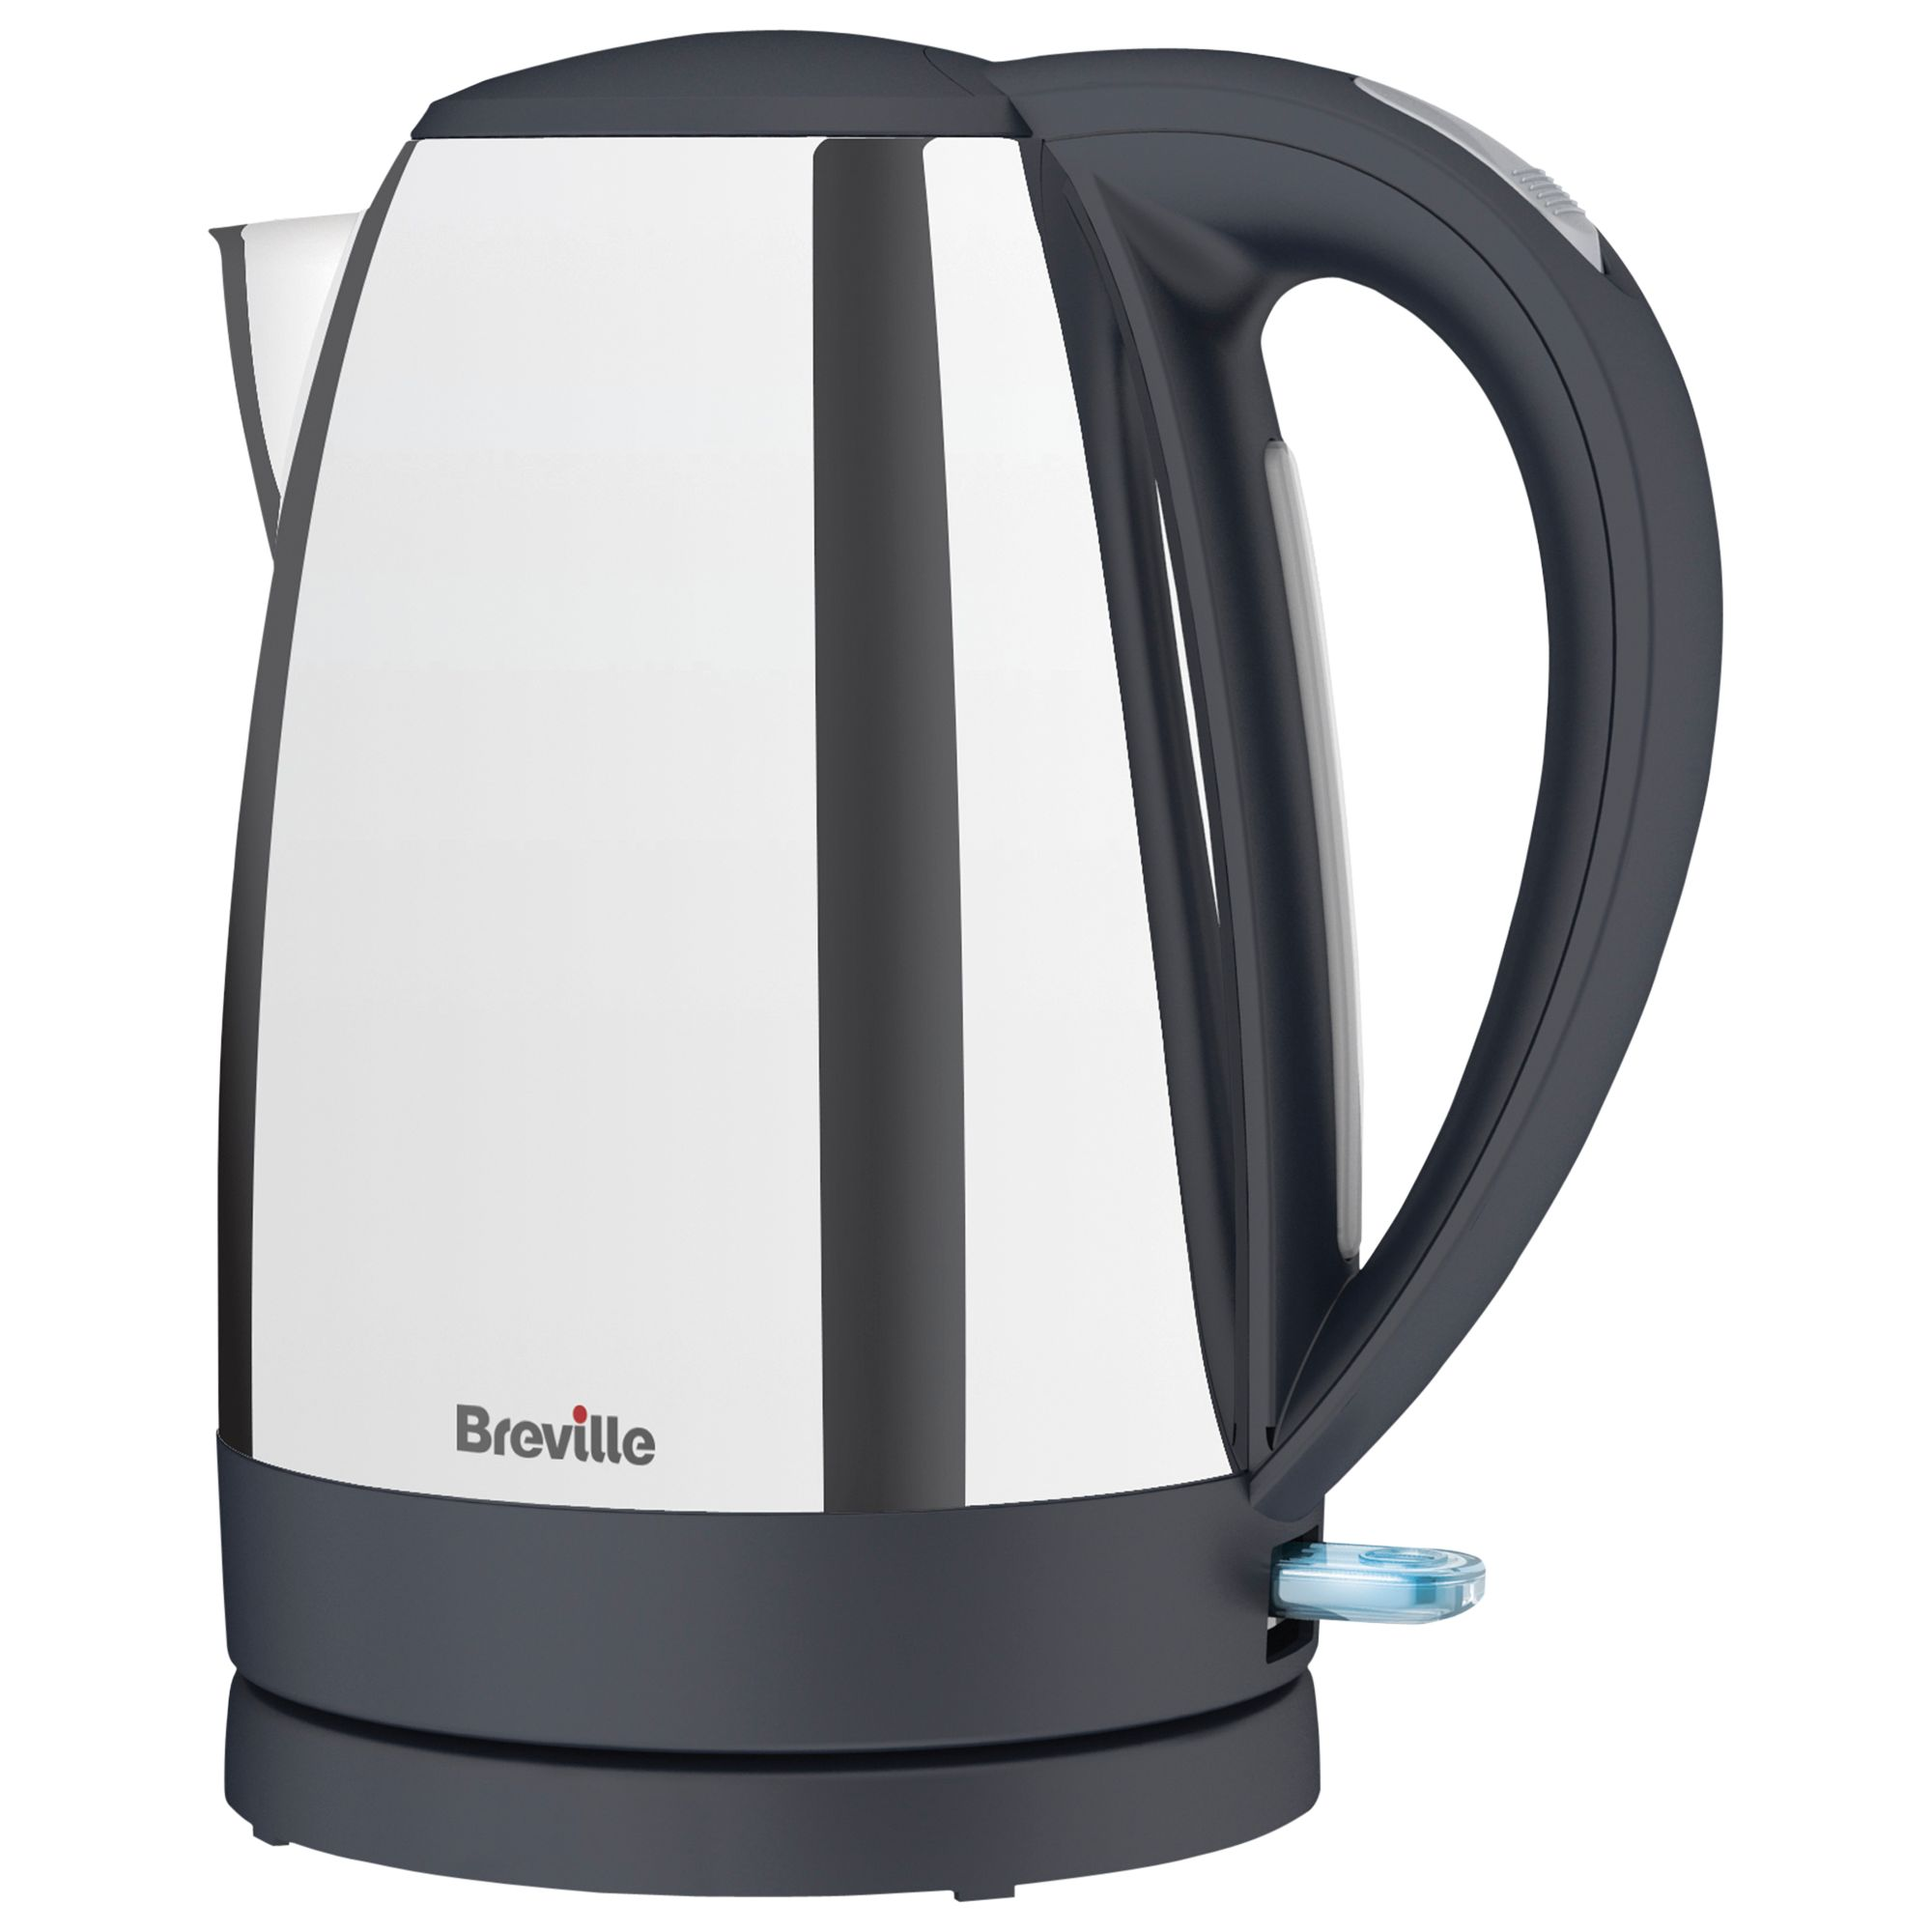 Breville VKJ385 Jug Kettle, Polished Stainless Steel